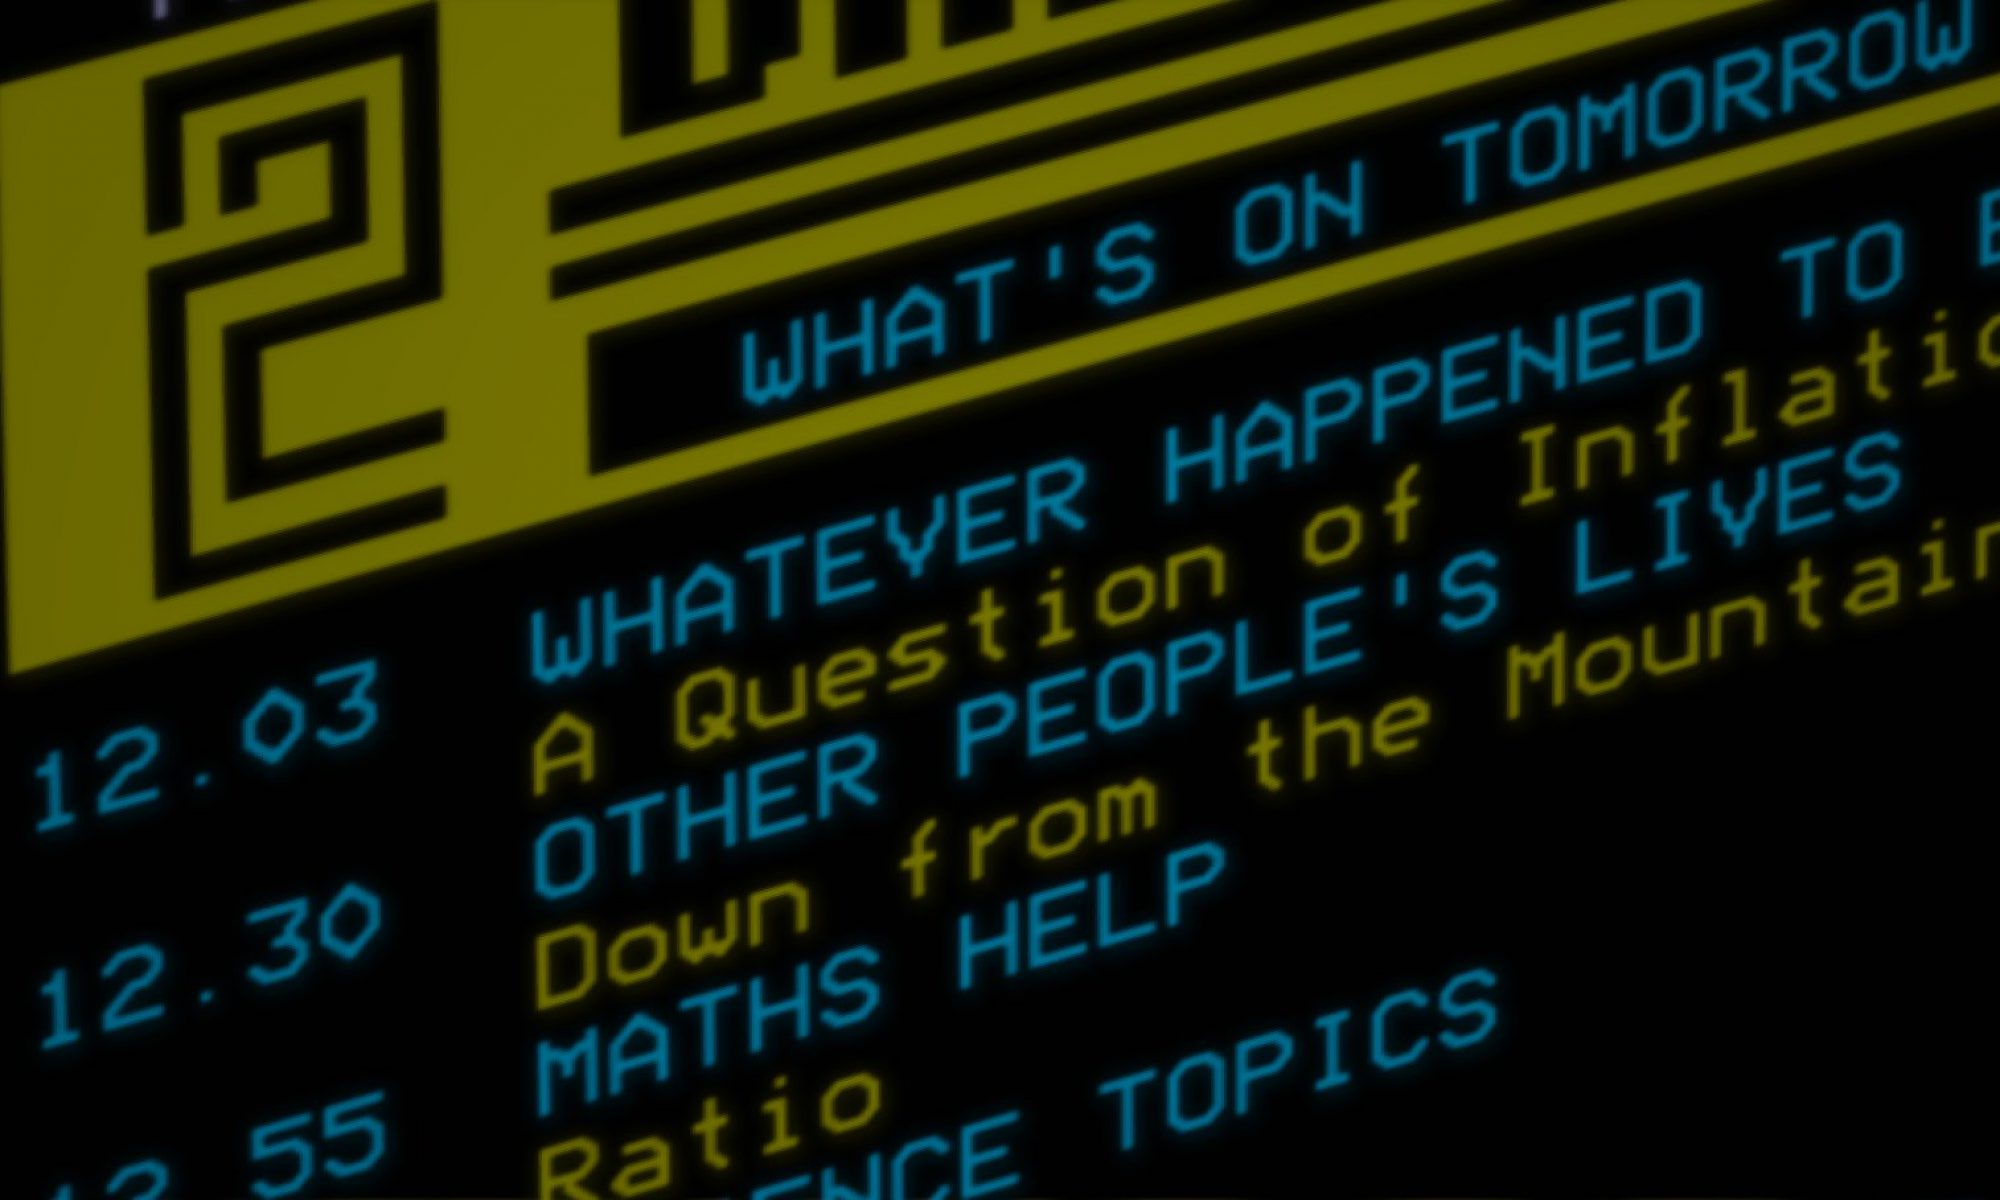 The Teletext Archaeologist